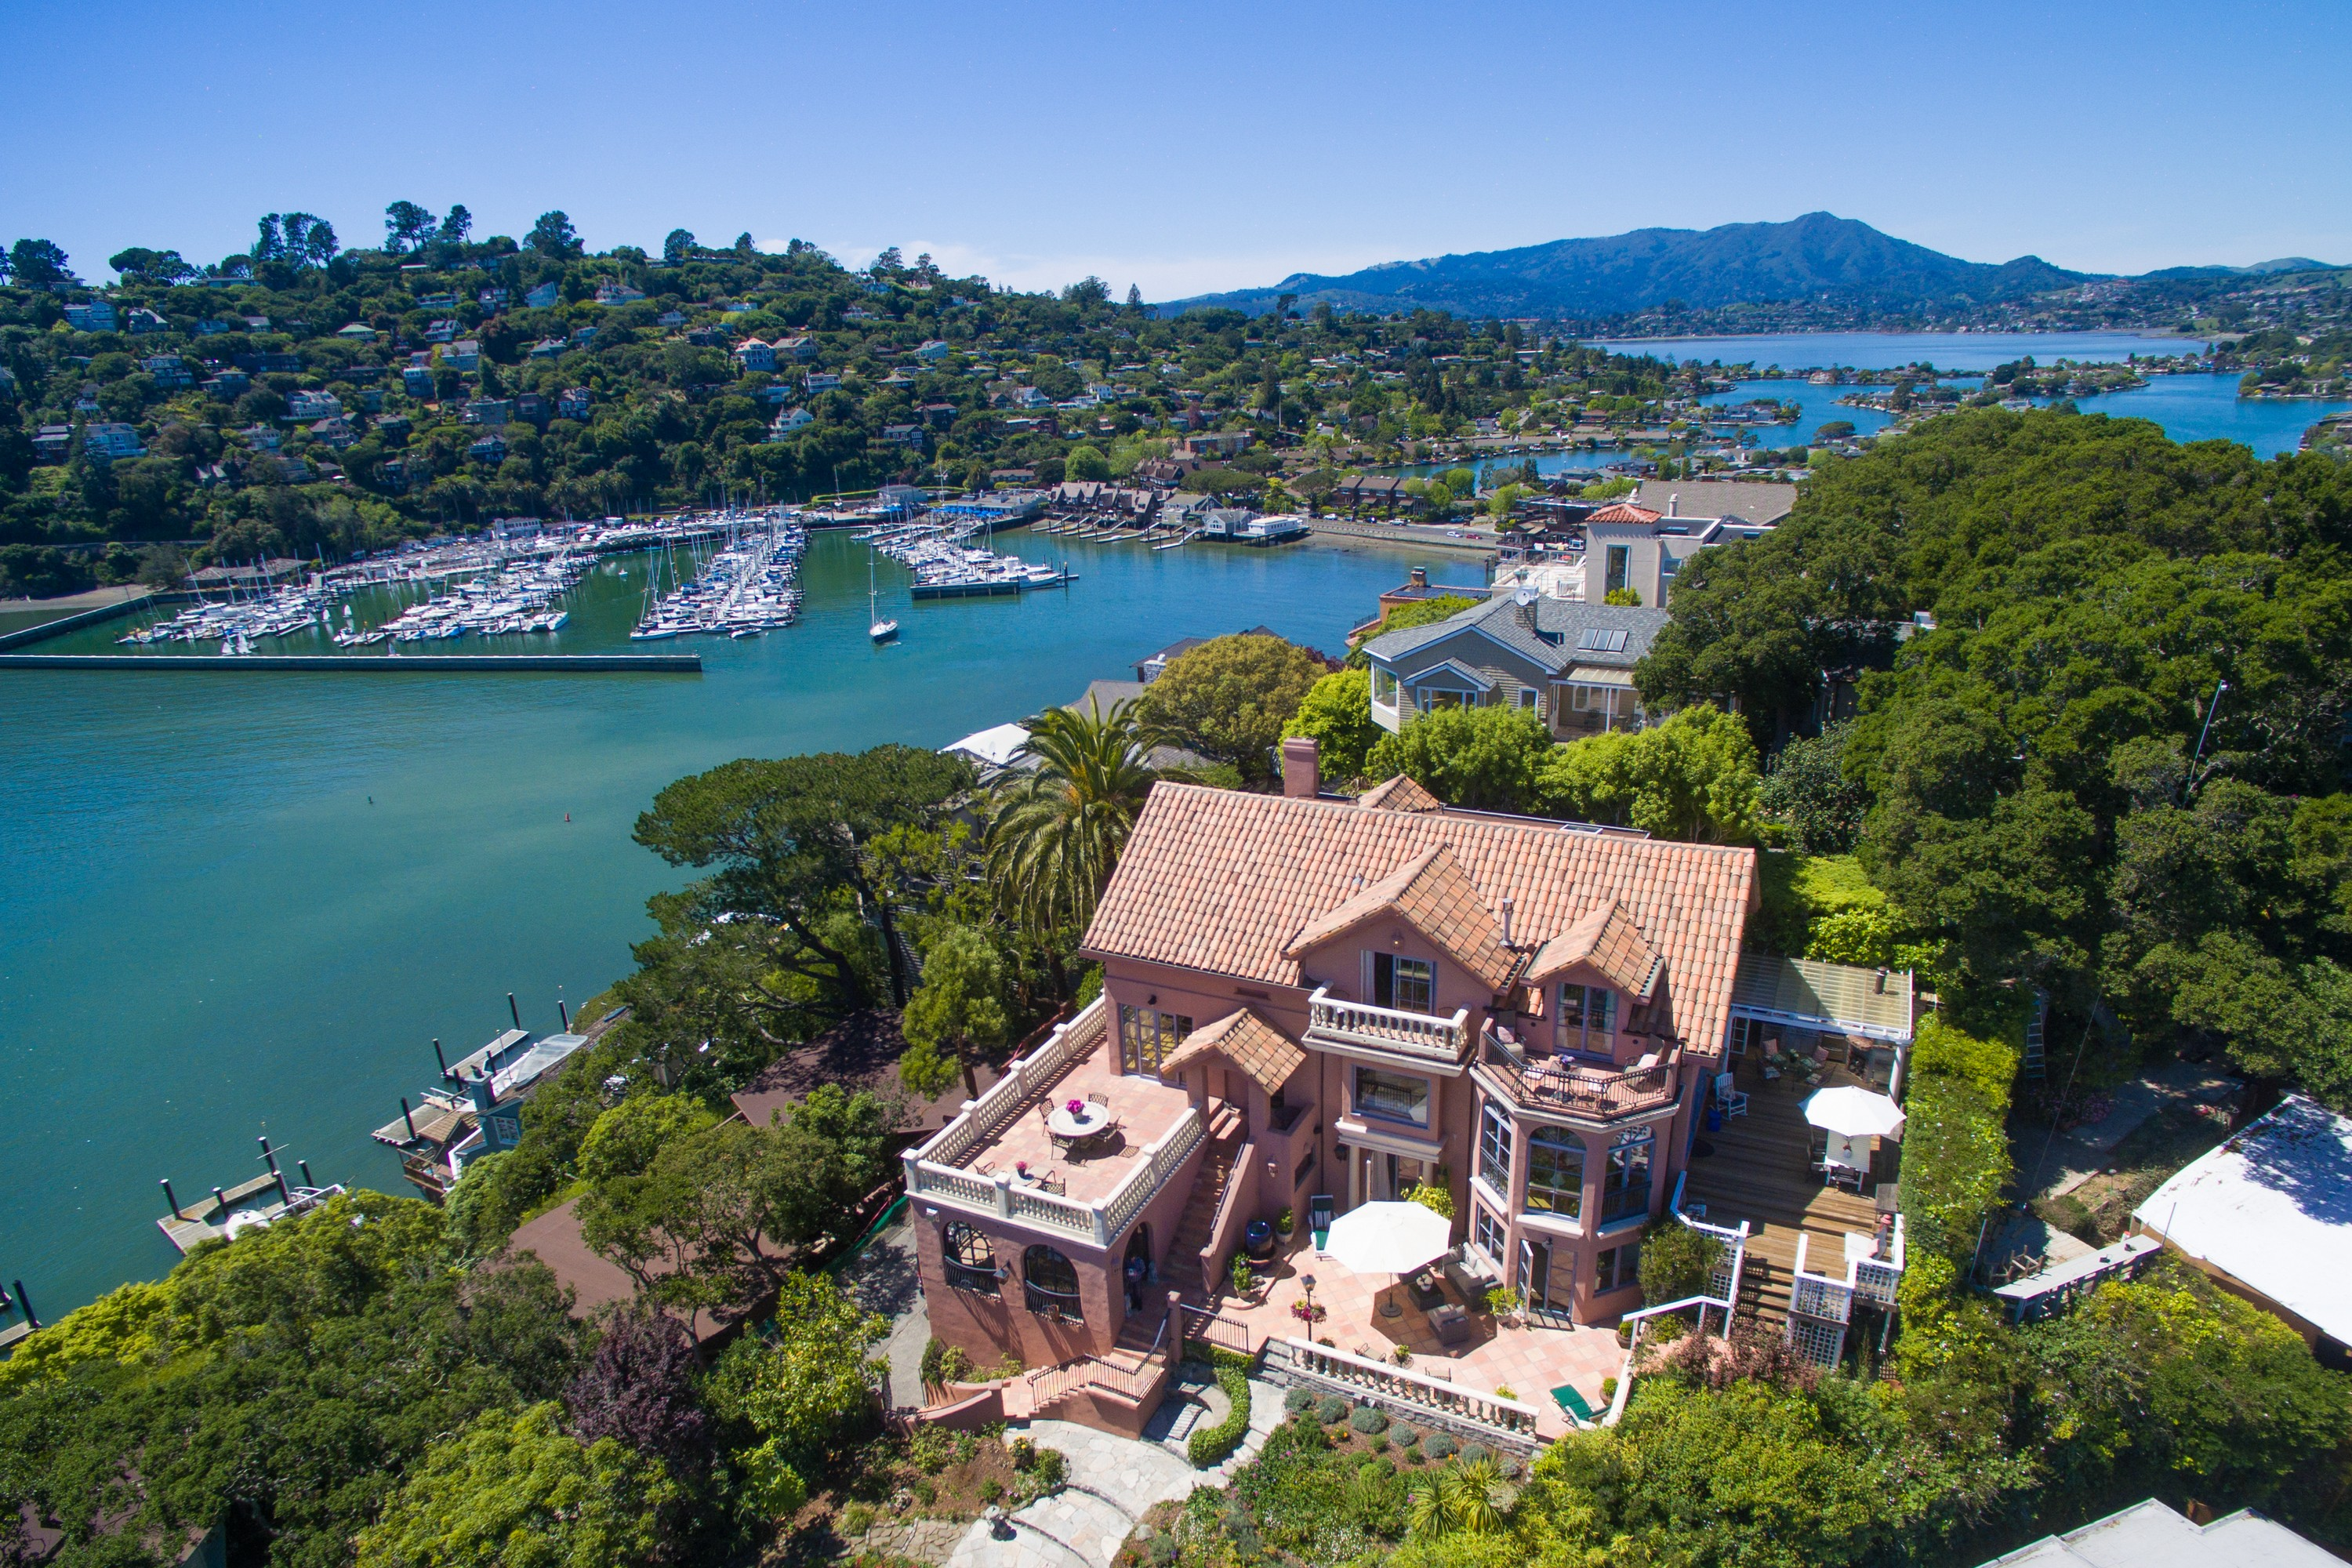 Single Family Home for Sale at Crown Jewel 80 Alcatraz Avenue Belvedere, California, 94920 United States